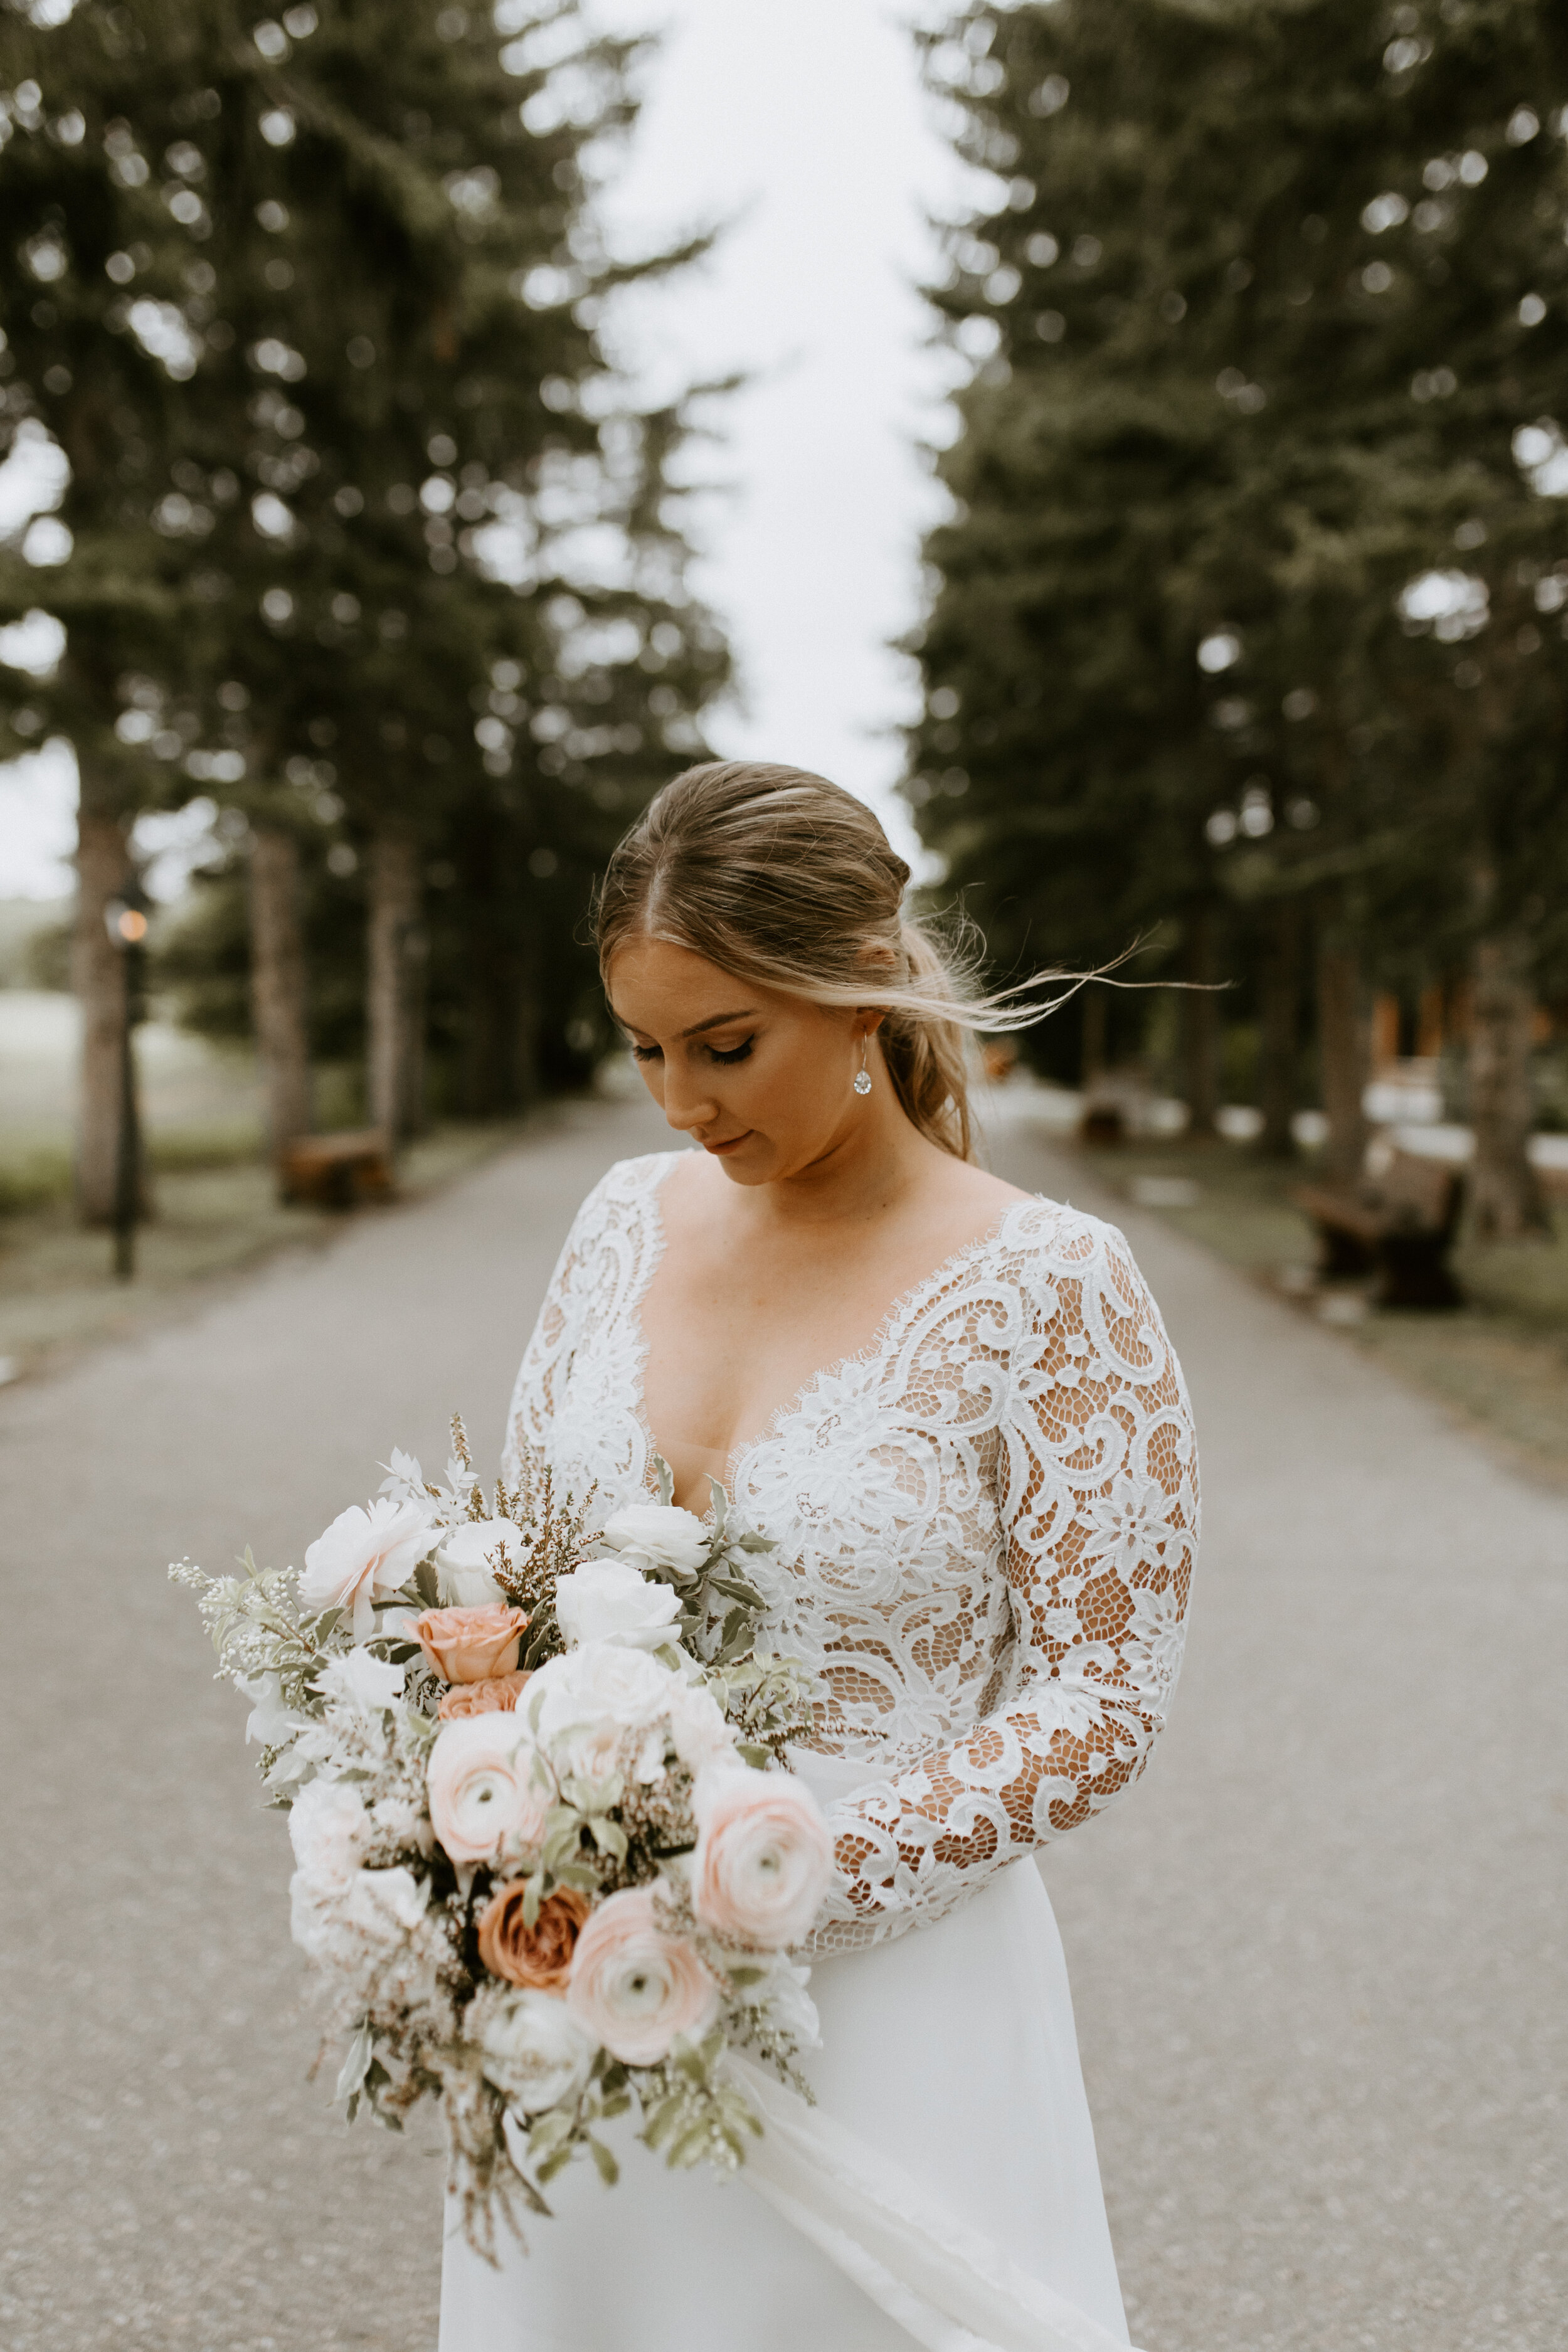 Bride - Wedding Style Inspiration - Bridal Bouquet